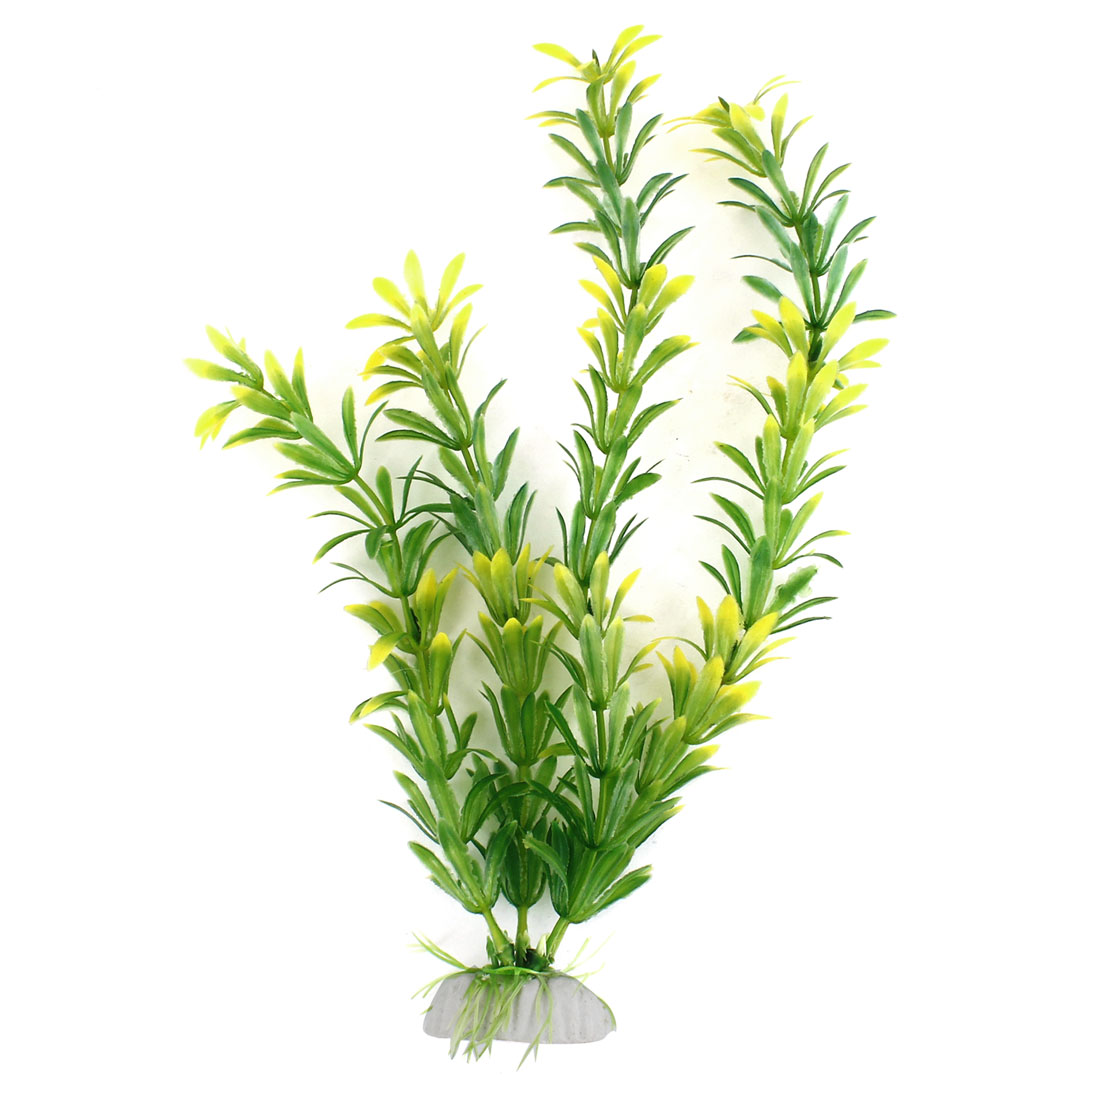 Green Yellow Artificial Plastic Grass Decoration for Aquarium